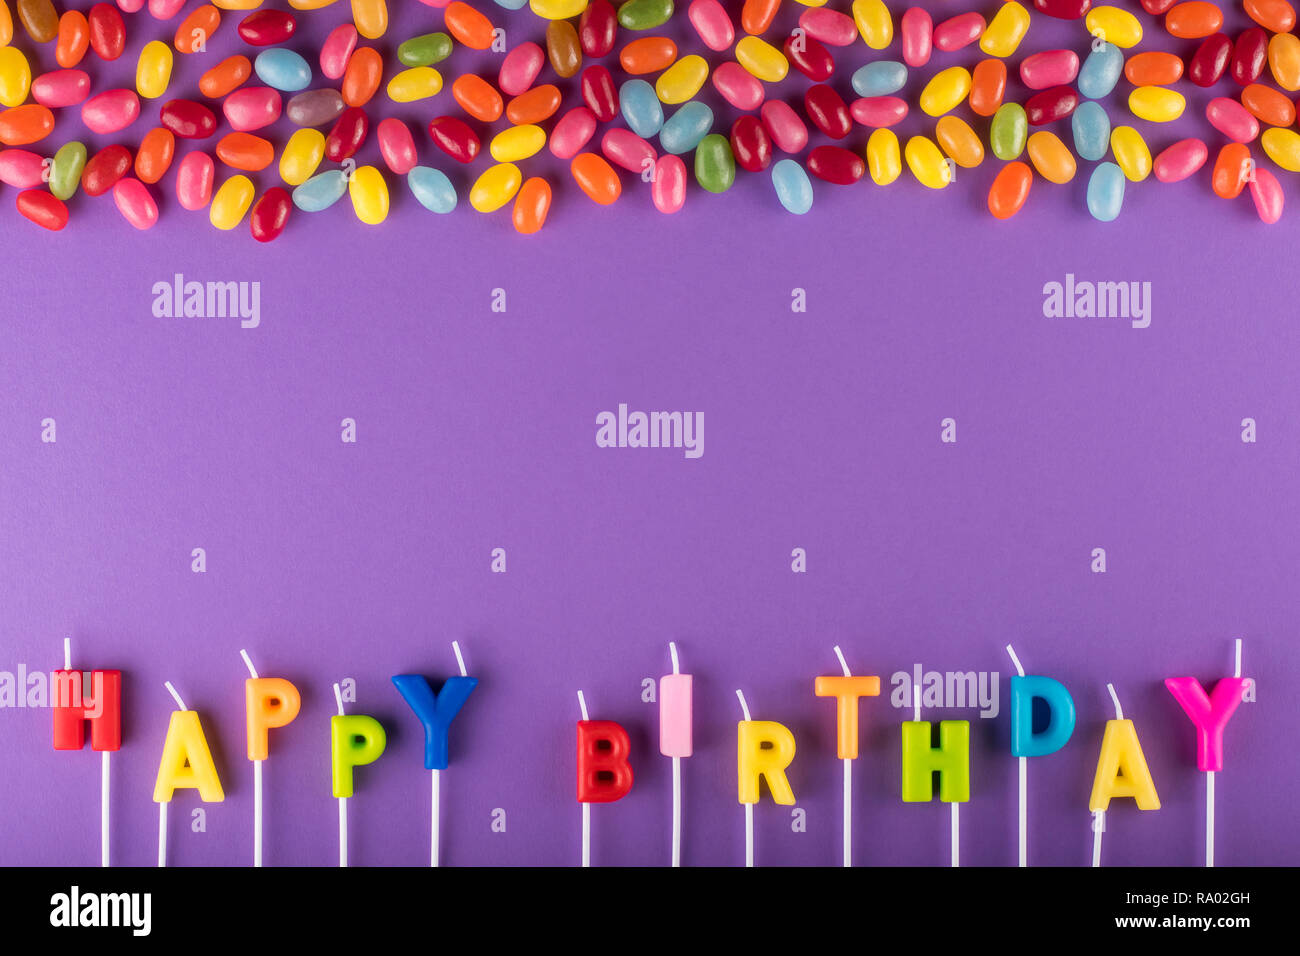 Colorful Happy Birthday candles for cake and jelly beans - Stock Image